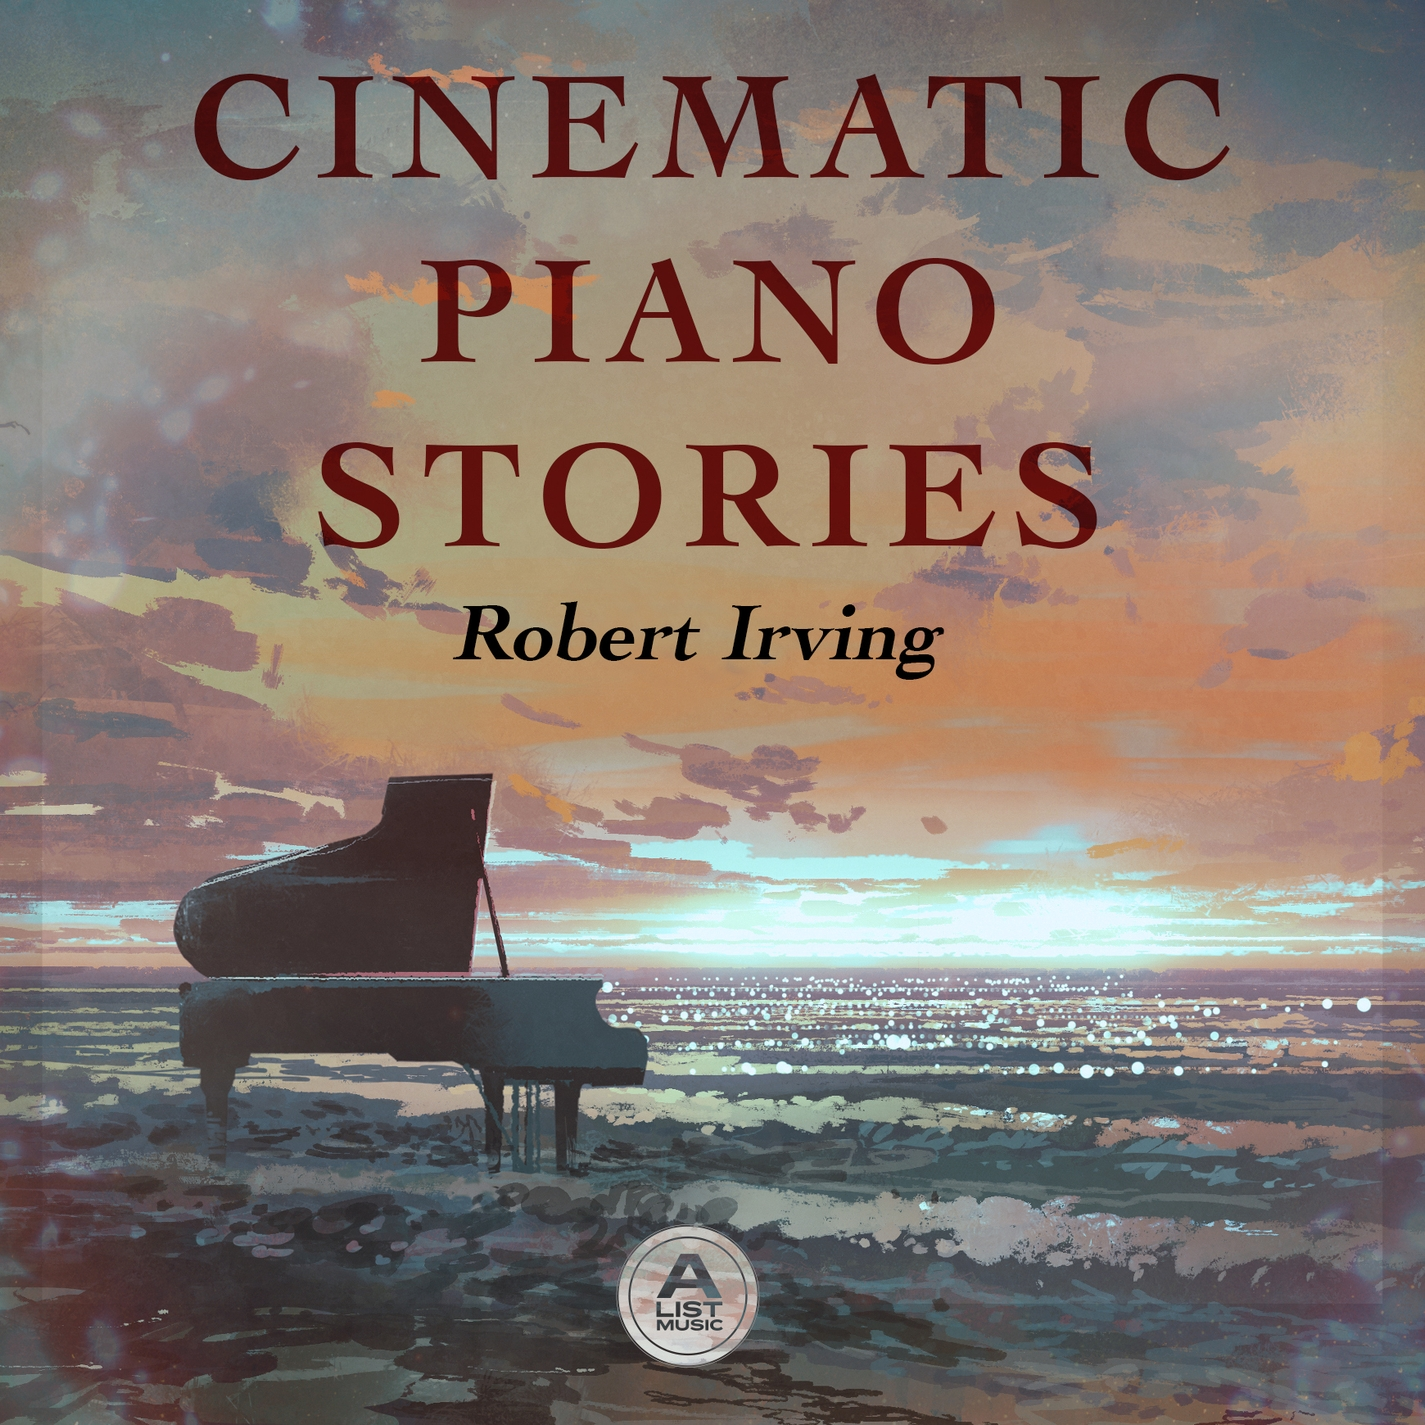 Cinematic Piano Stories